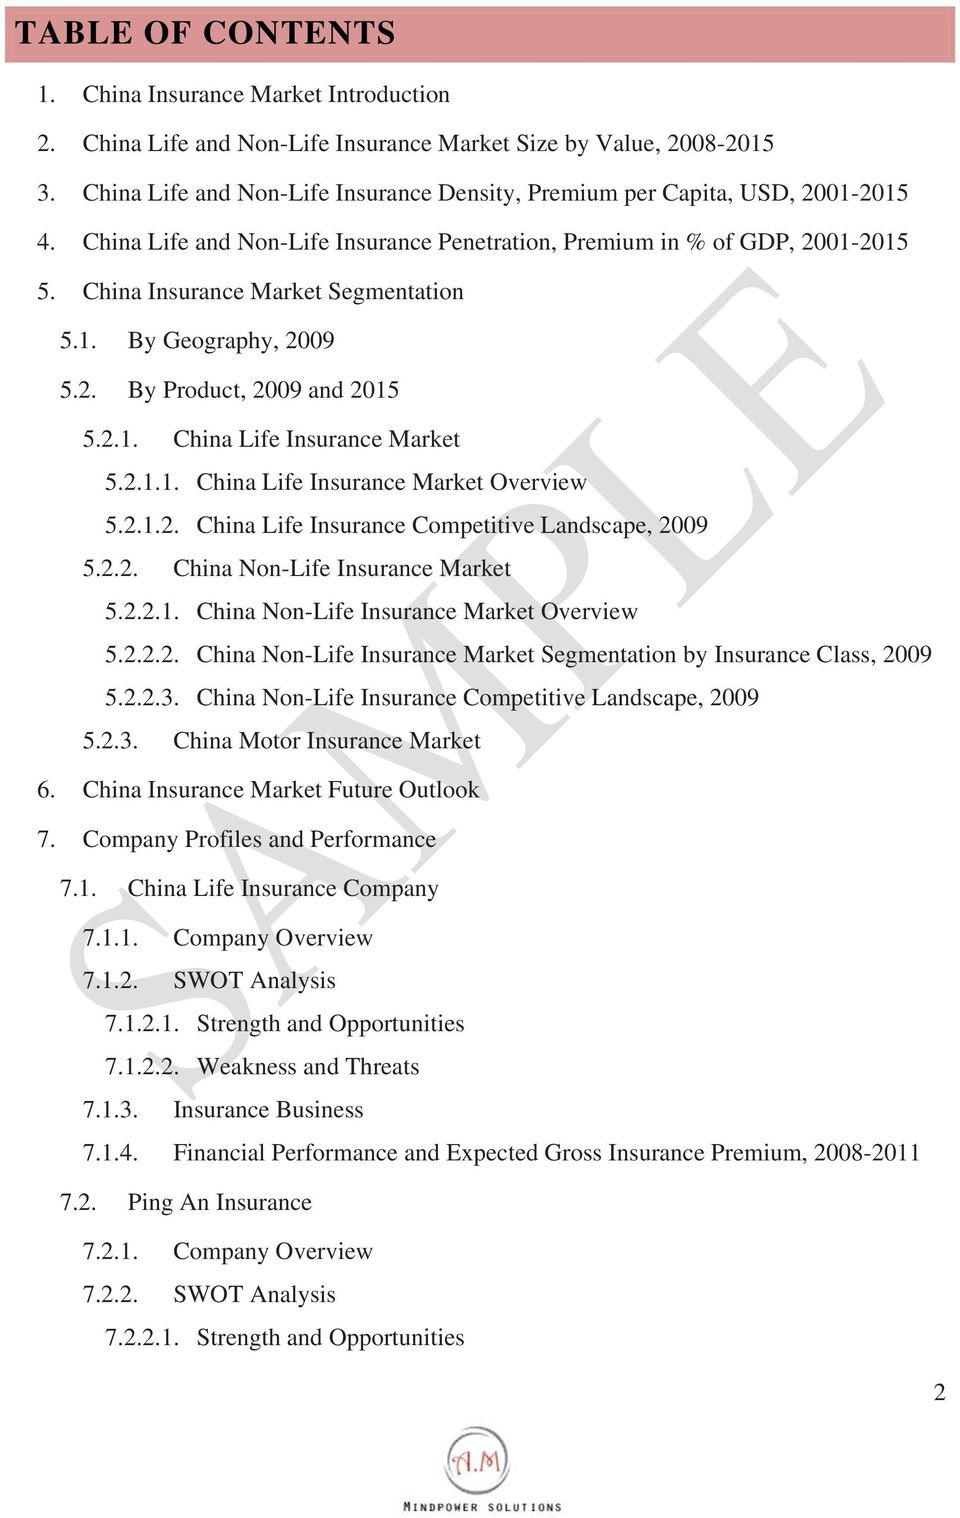 1. By Geography, 2009 5.2. By Product, 2009 and 2015 5.2.1. China Life Insurance Market 5.2.1.1. China Life Insurance Market Overview 5.2.1.2. China Life Insurance Competitive Landscape, 2009 5.2.2. China Non-Life Insurance Market 5.